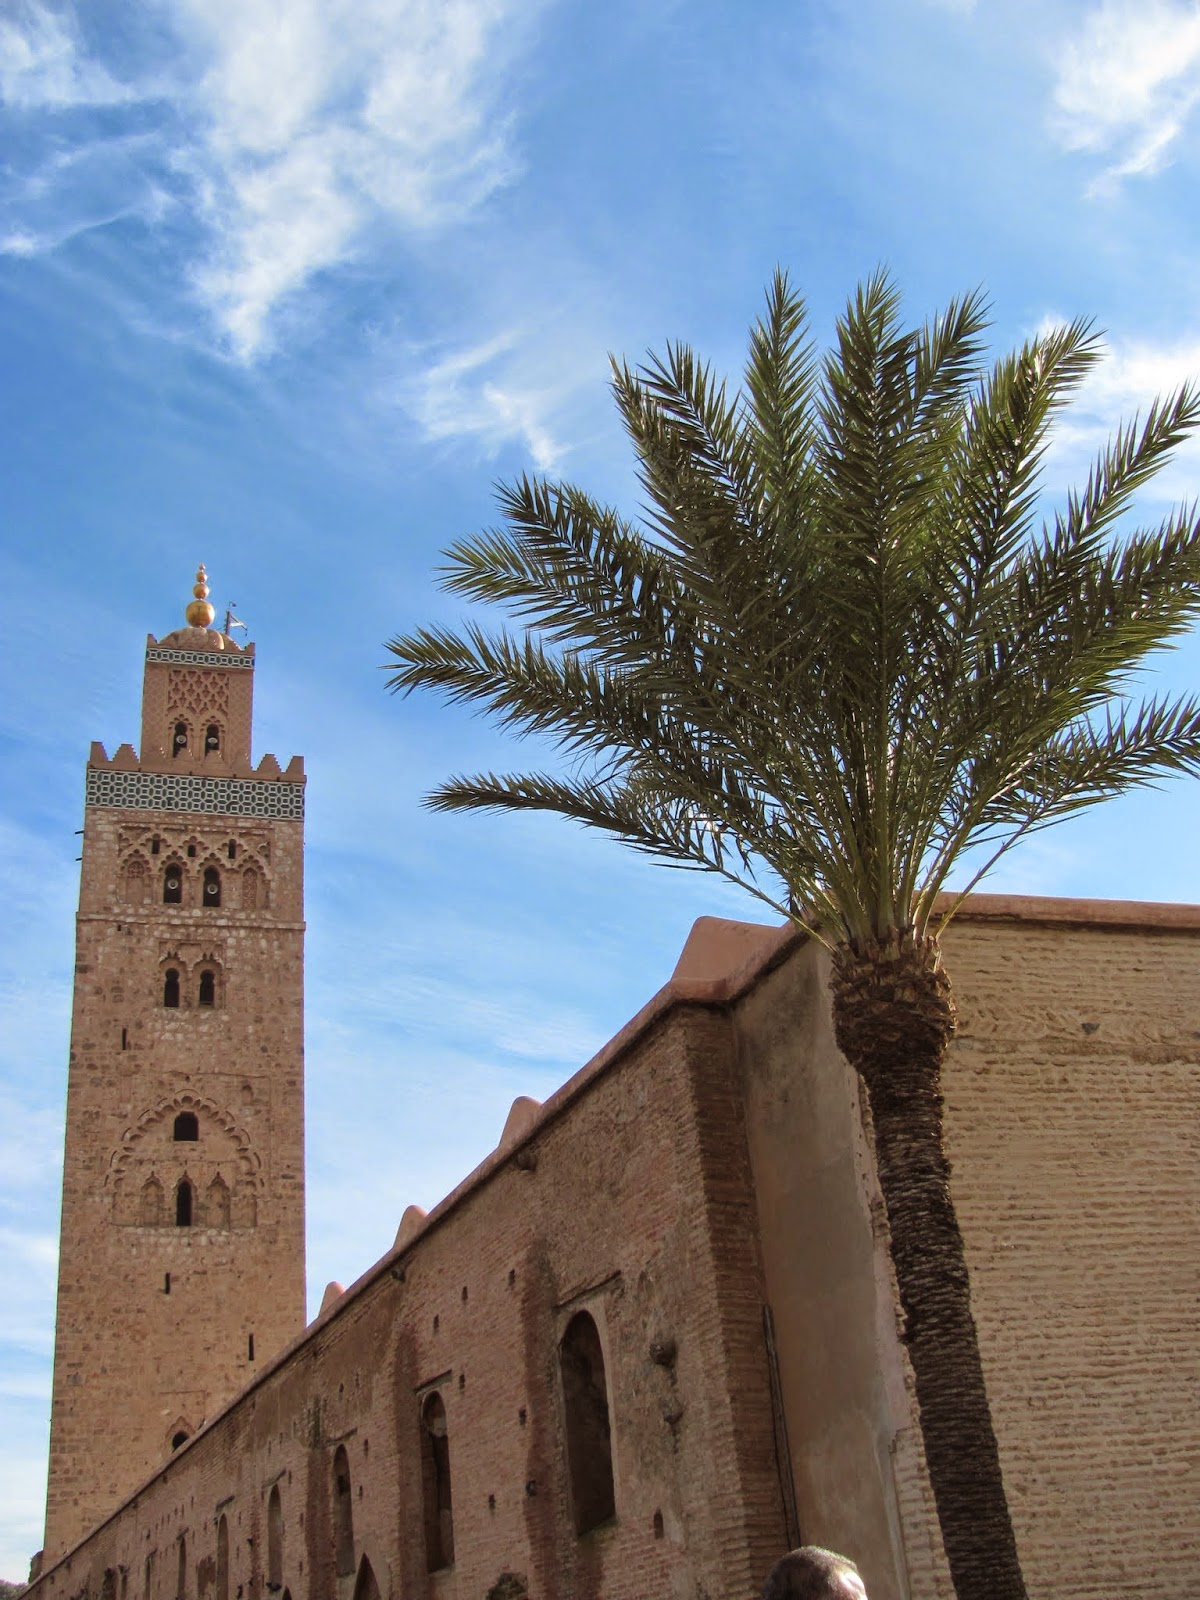 The Minaret of the Koutoubia Mosque Marrakech, Morocco